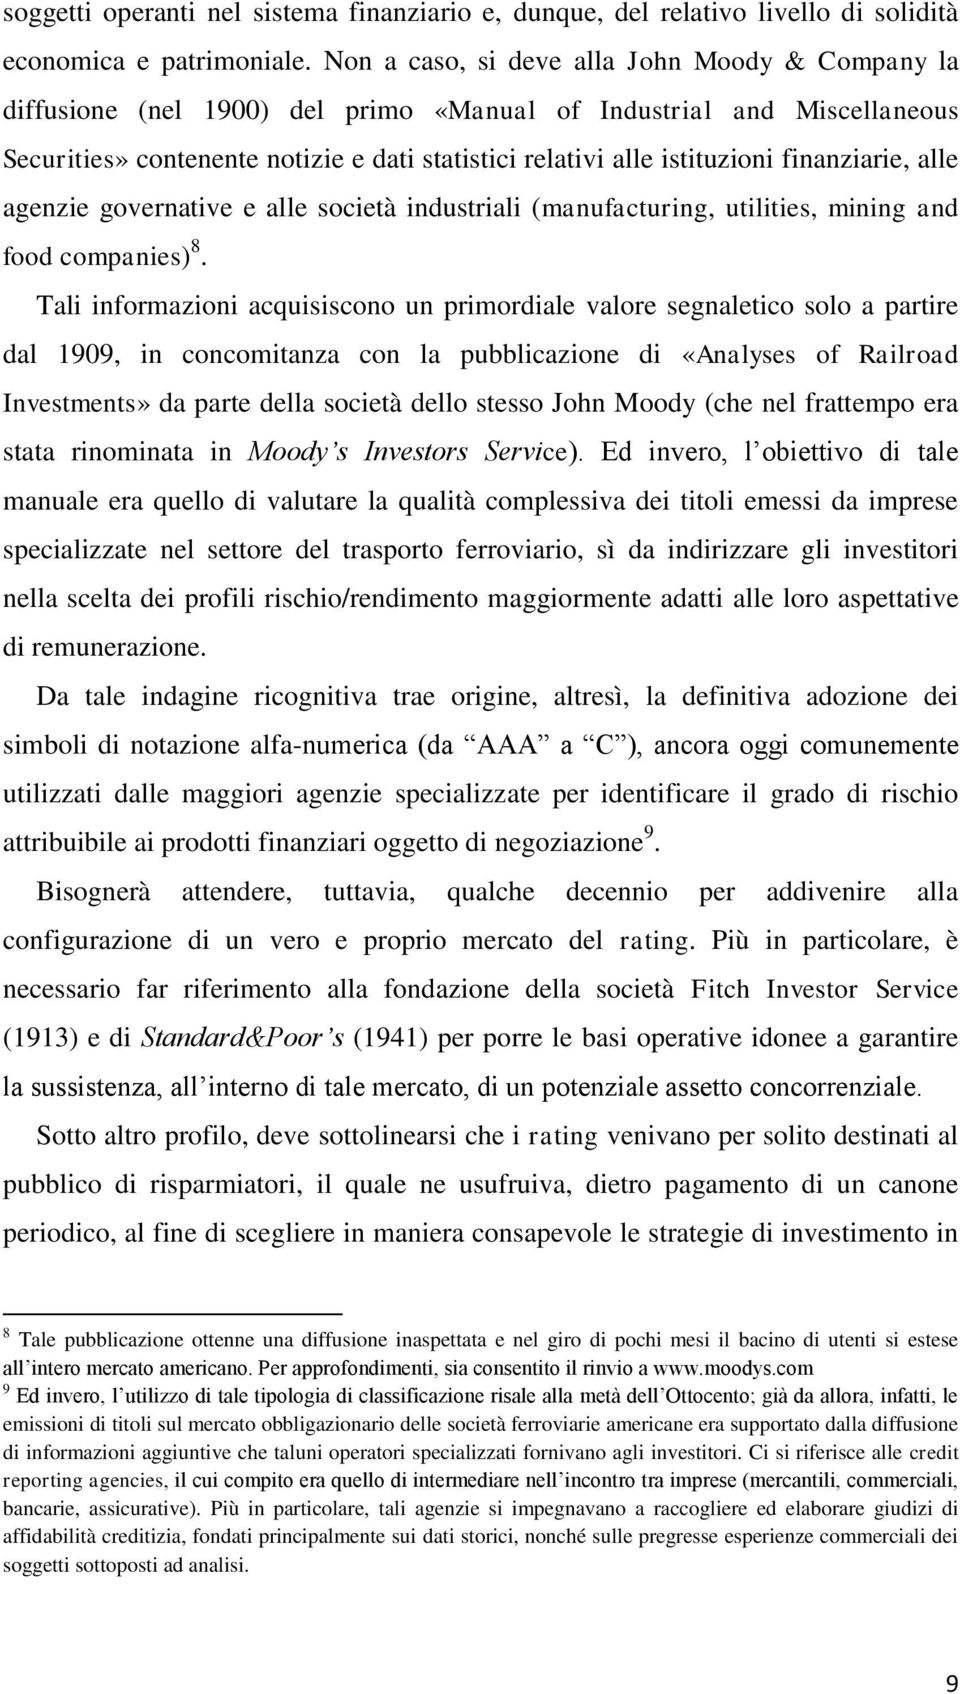 finanziarie, alle agenzie governative e alle società industriali (manufacturing, utilities, mining and food companies) 8.